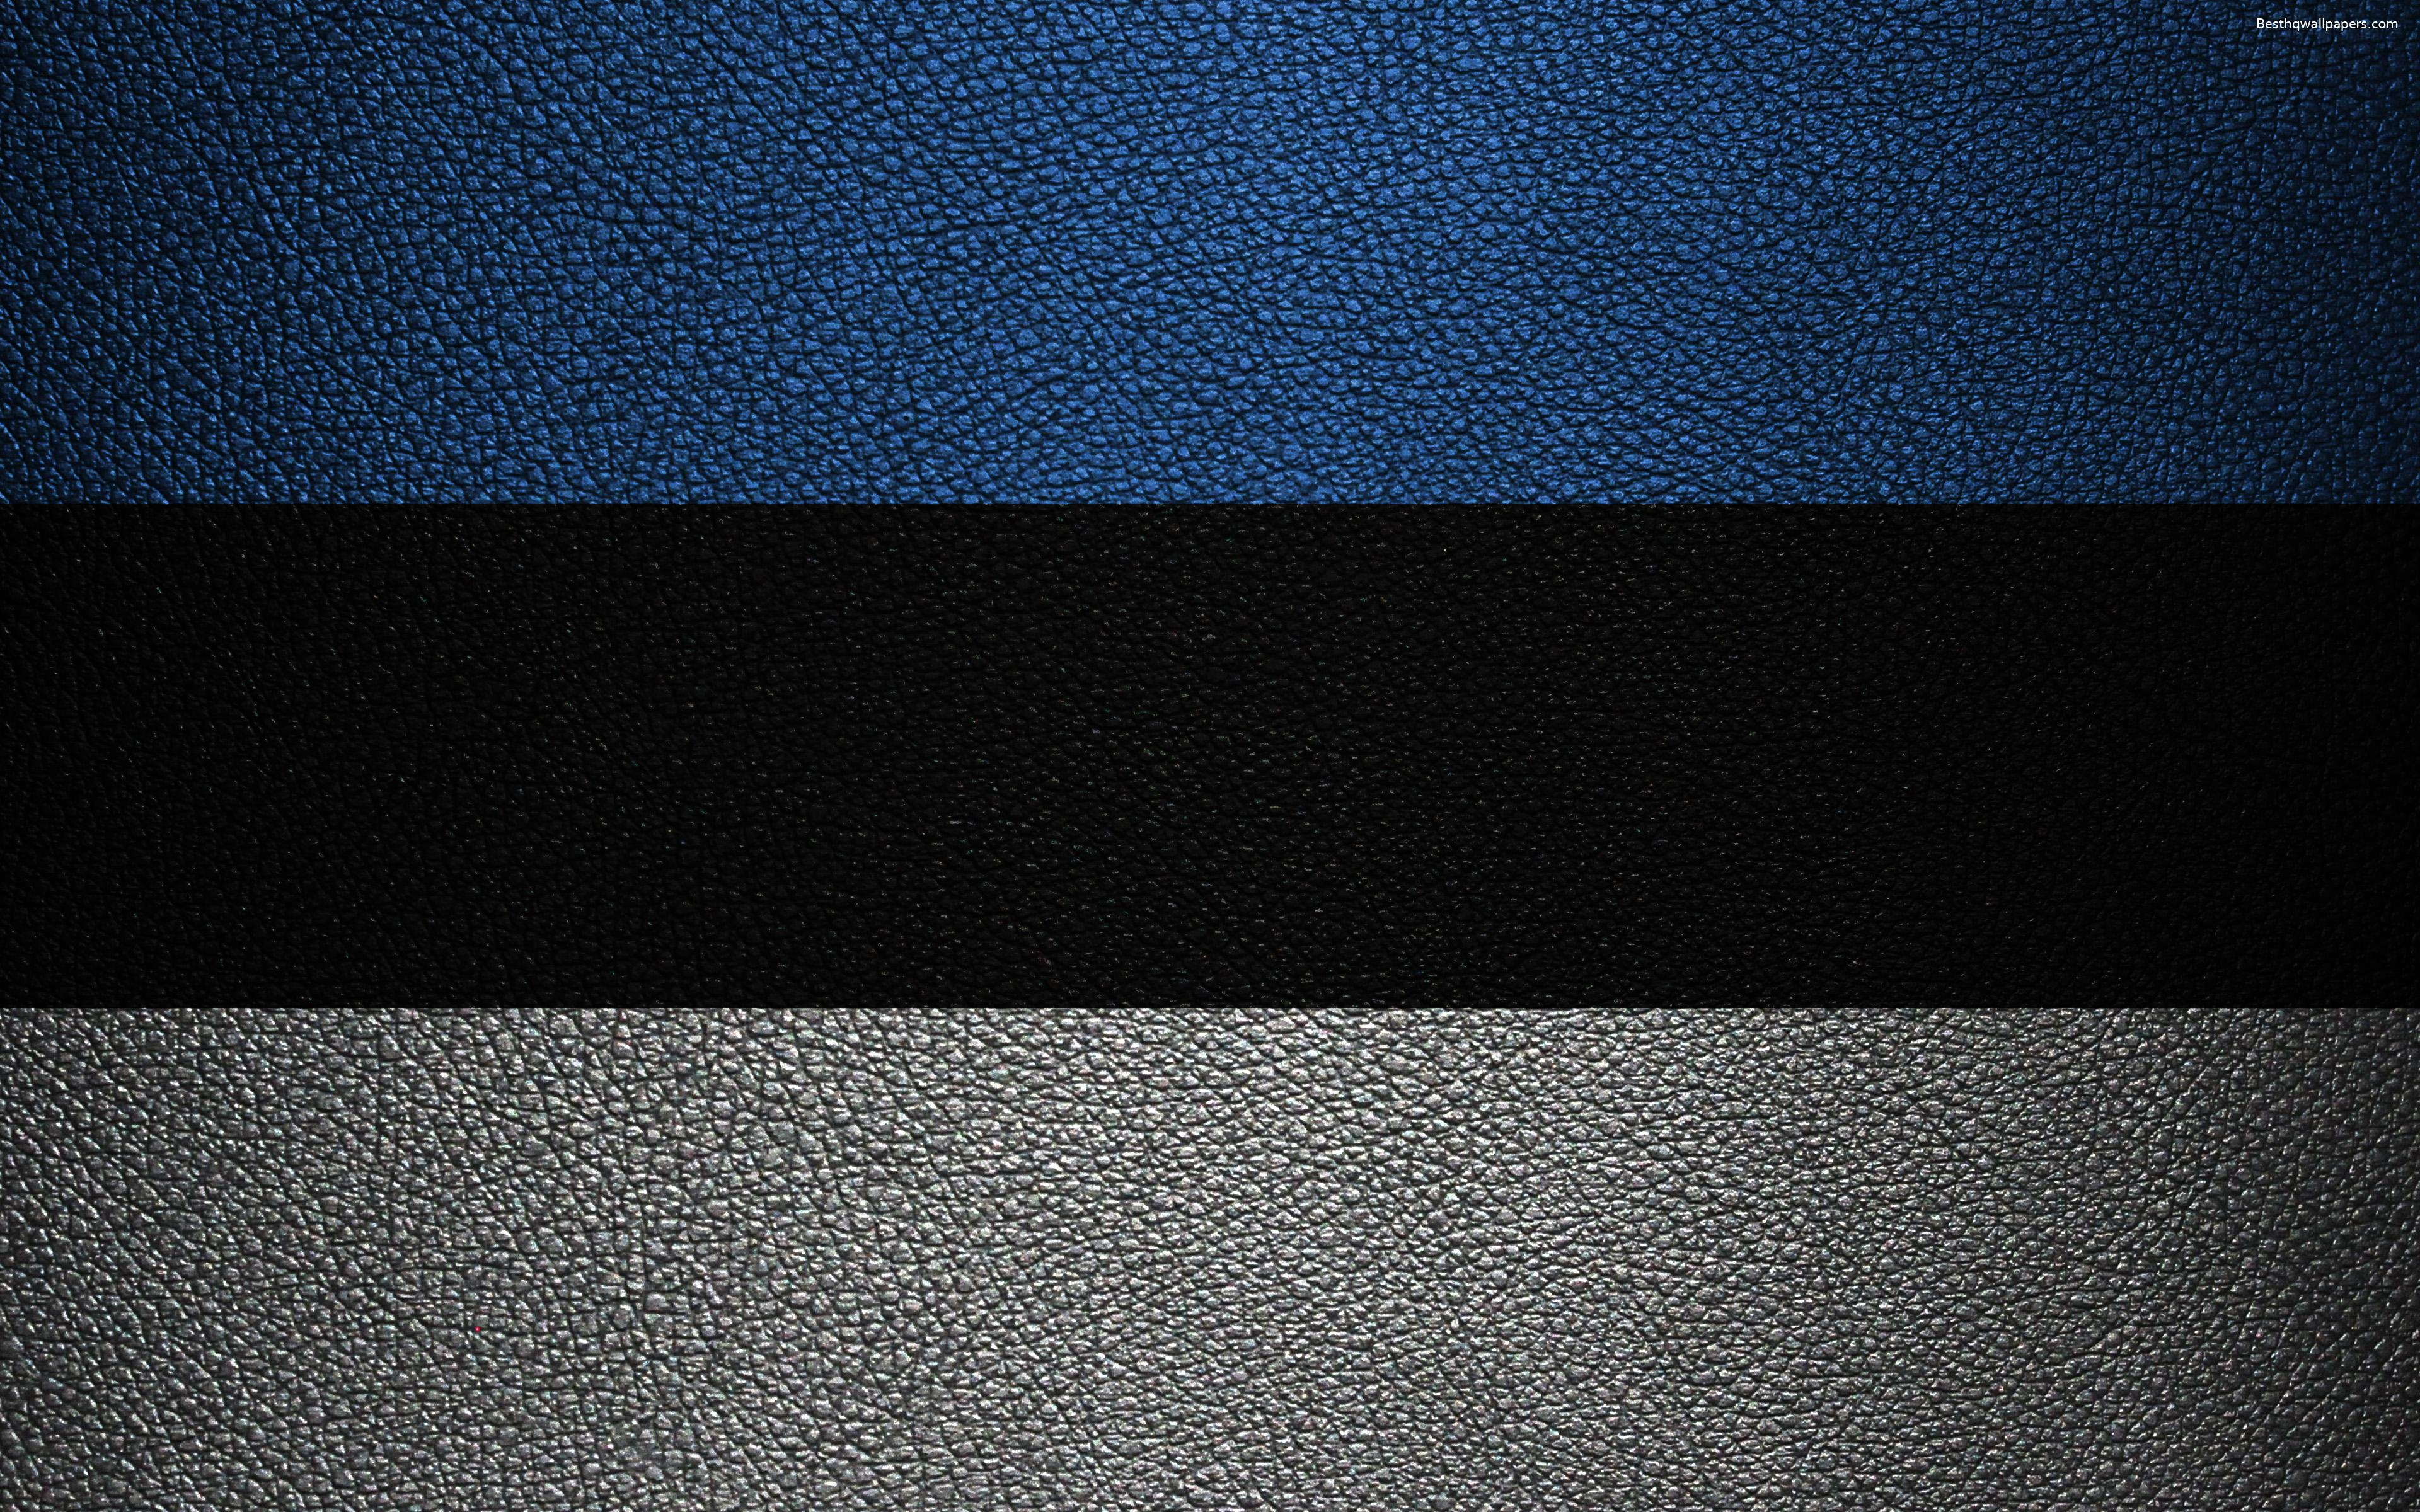 Download wallpapers Flag of Estonia, 4k, leather texture, Estonian